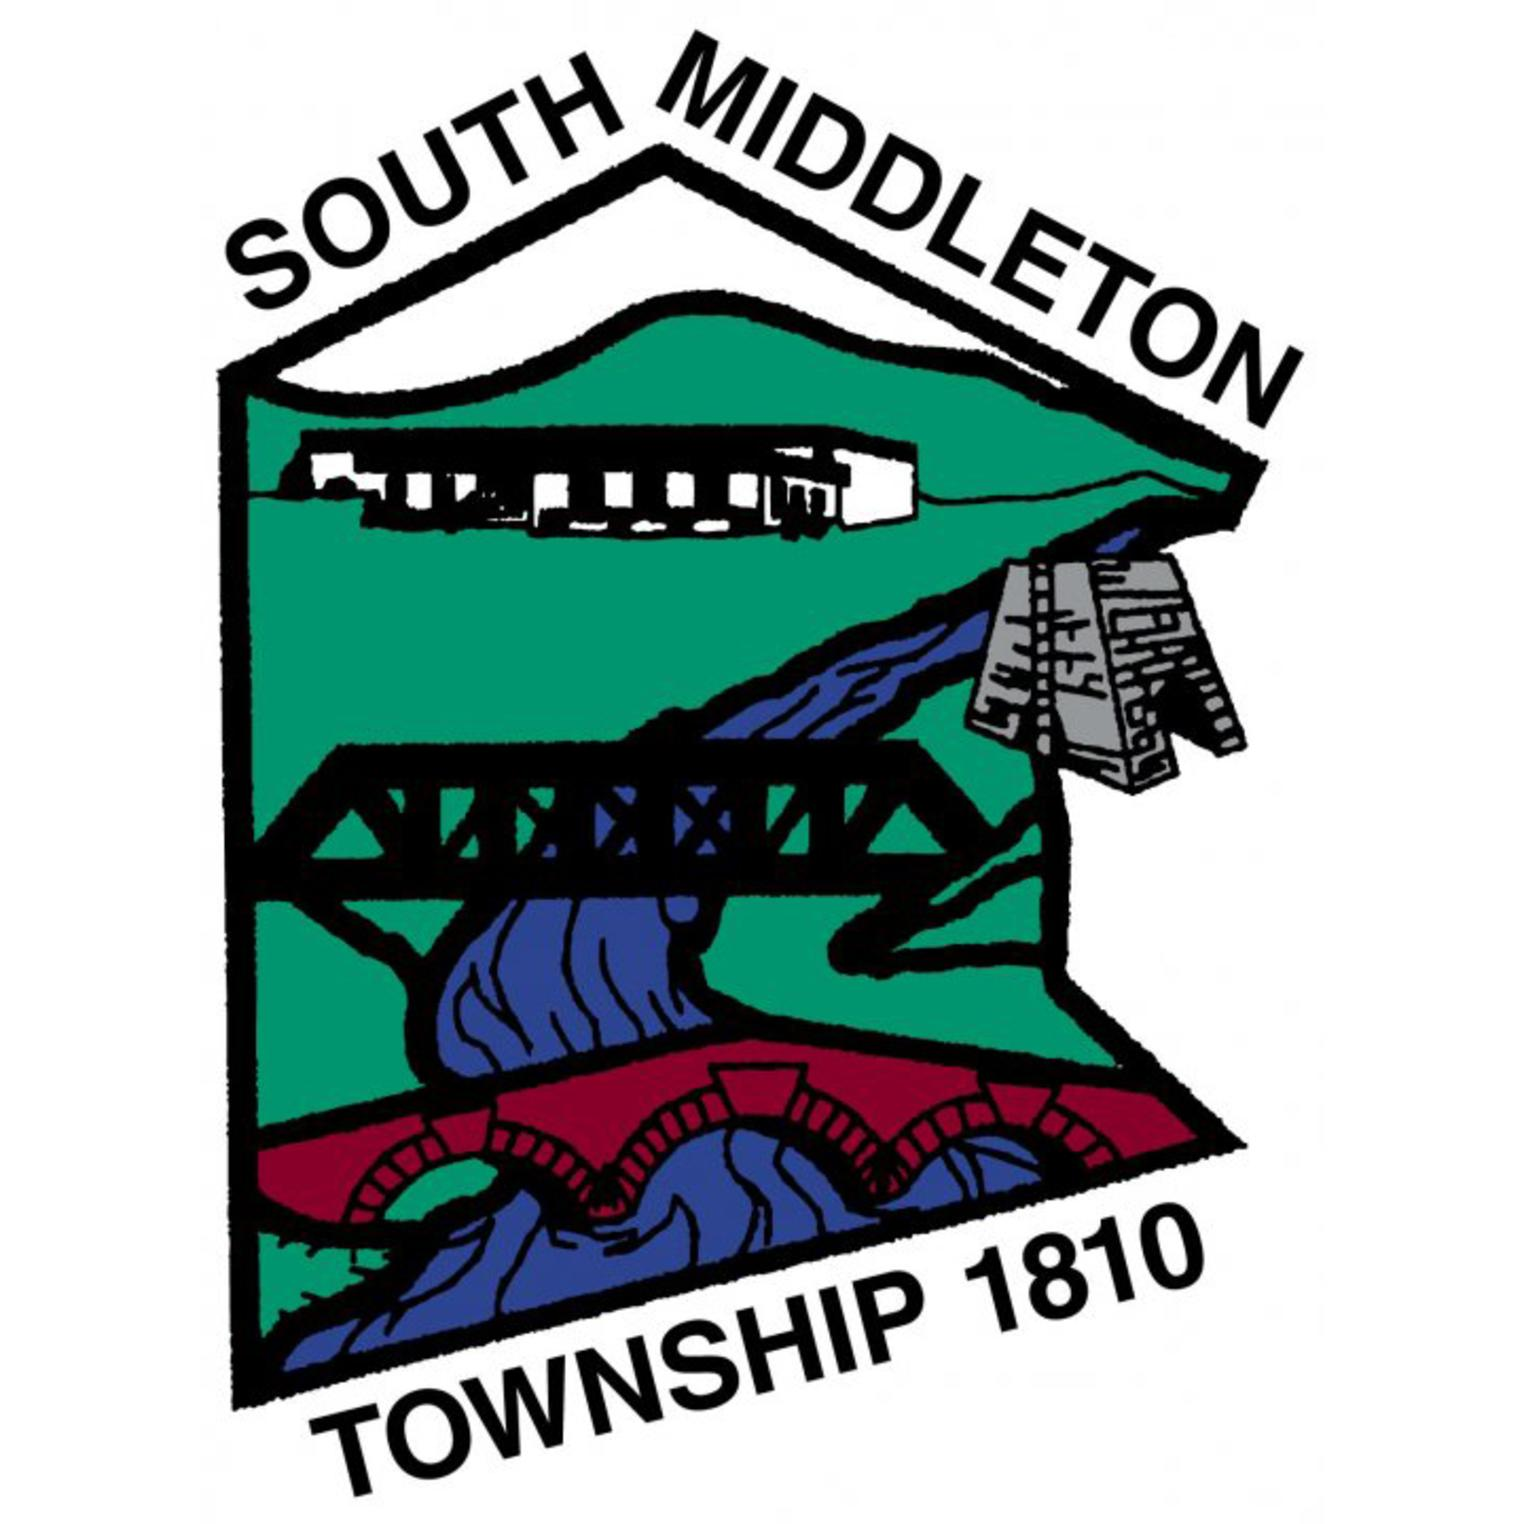 South Middleton Township